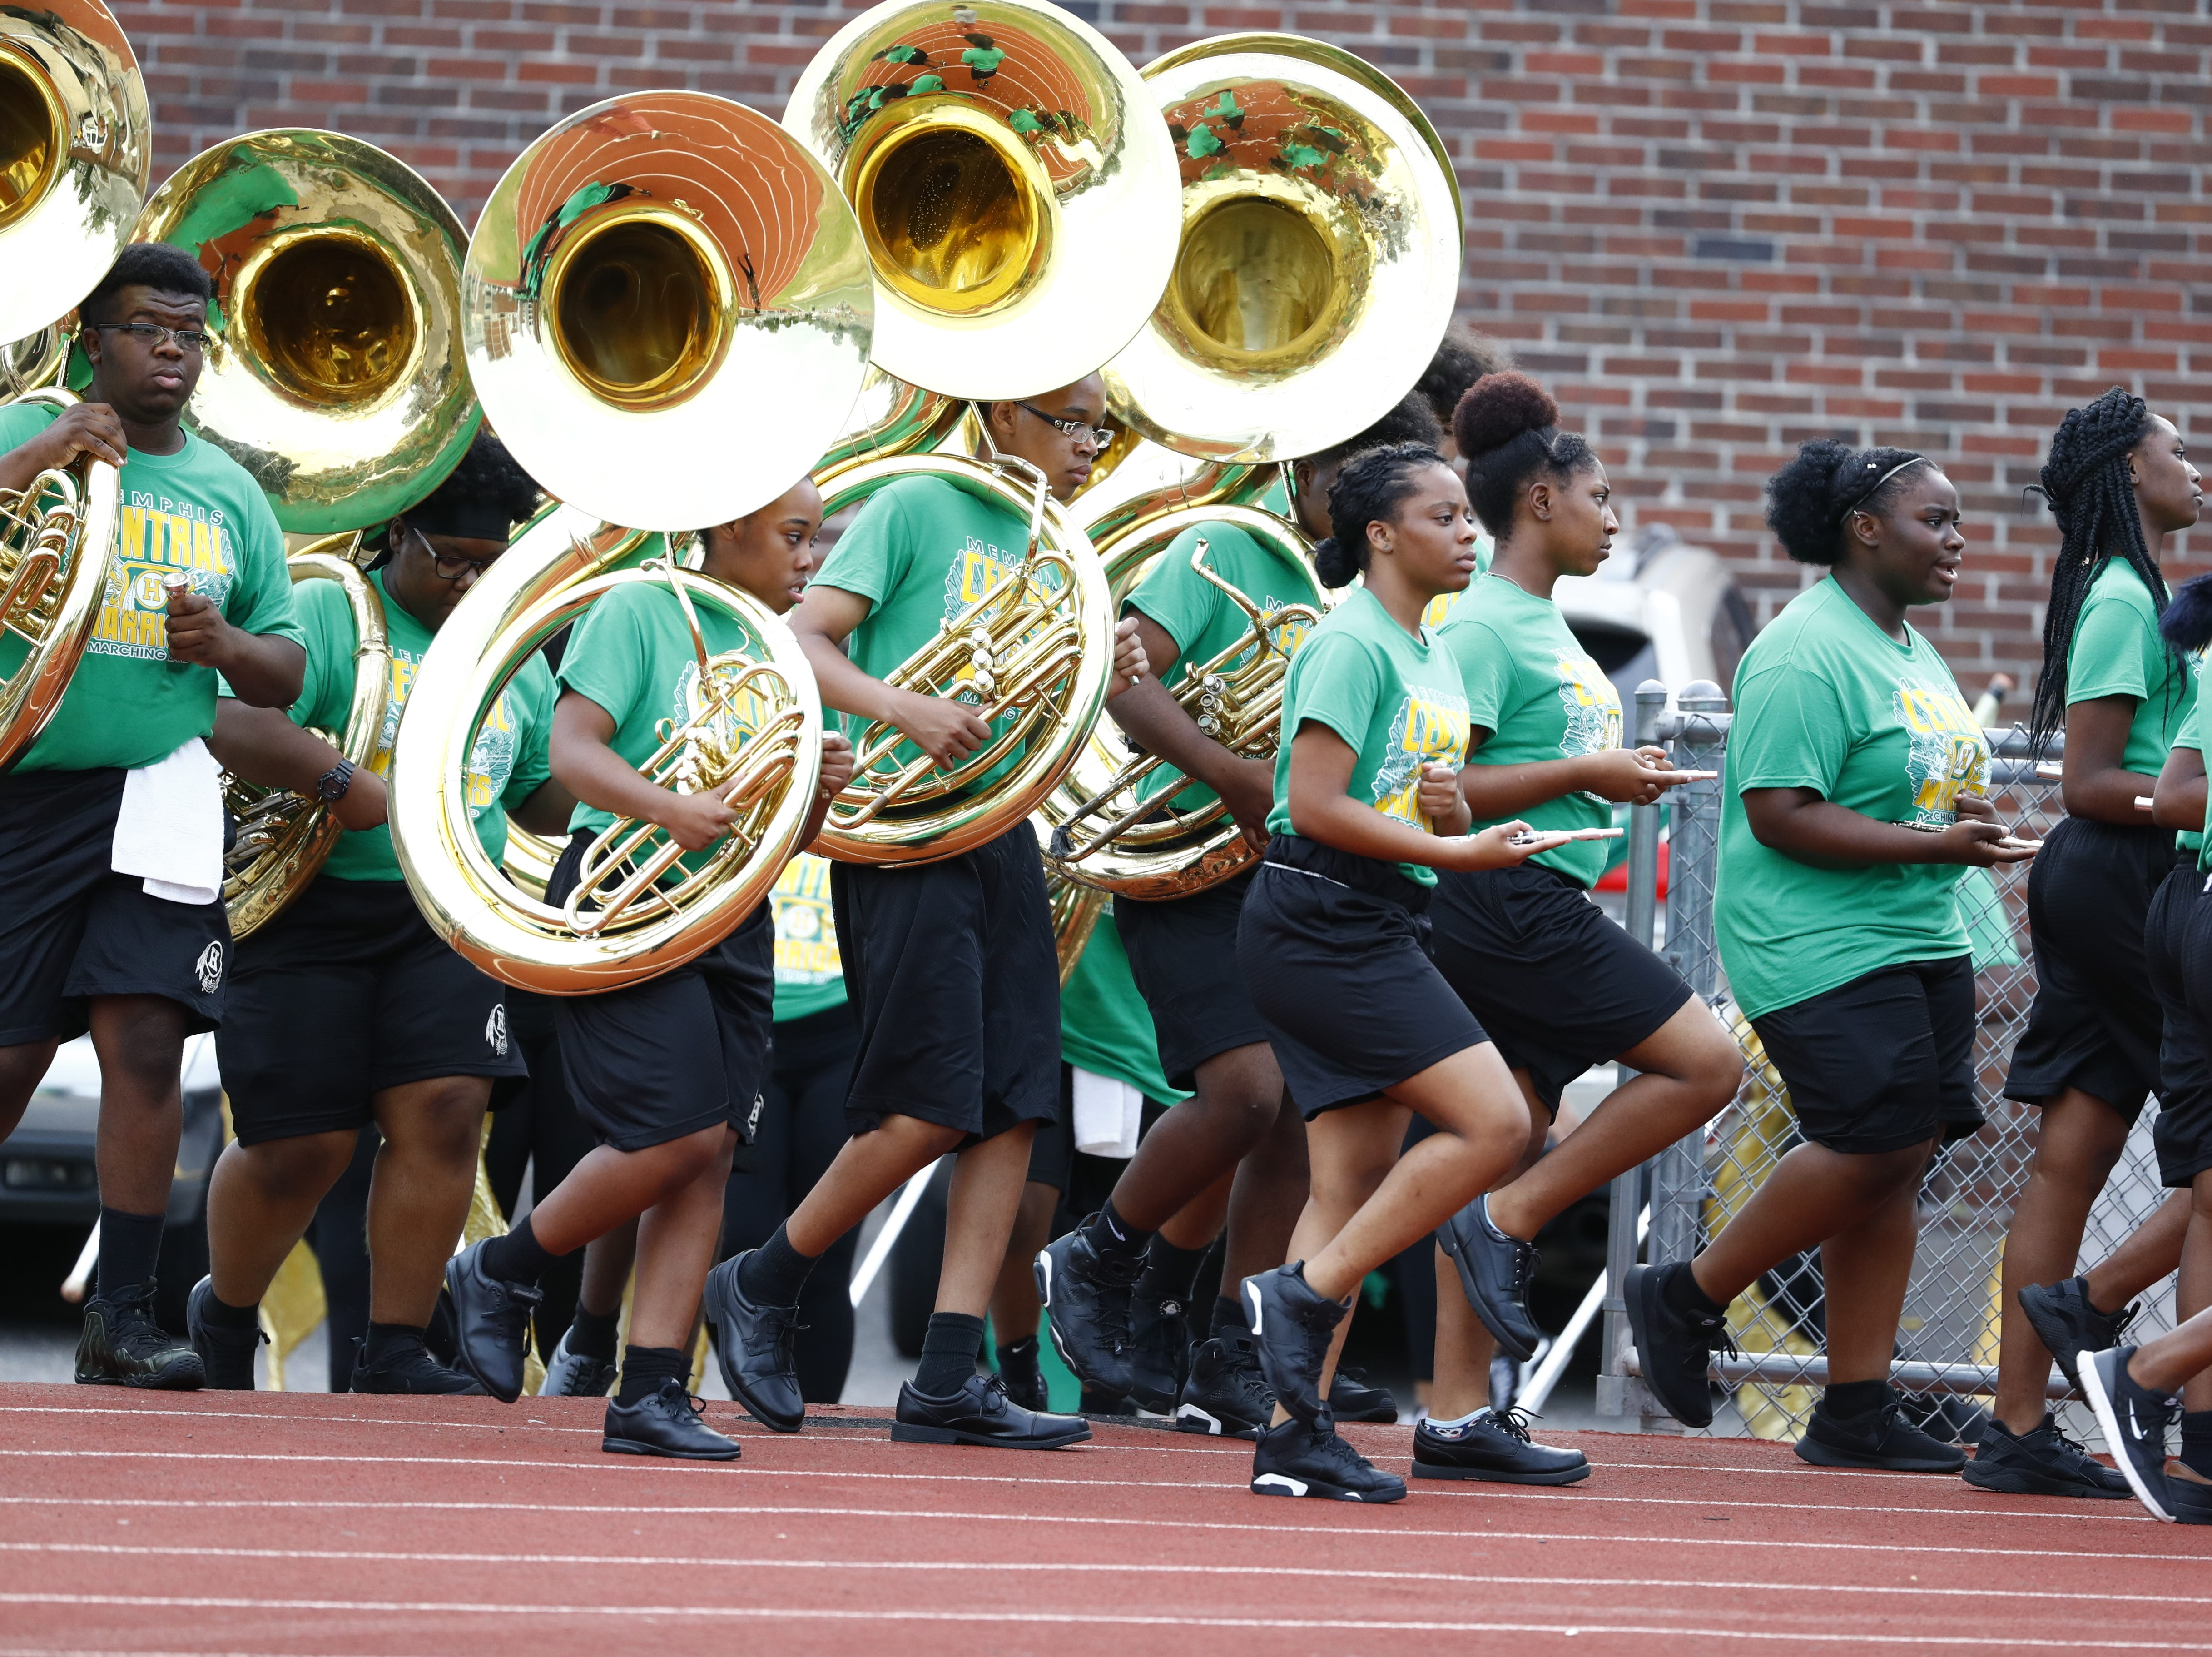 The Central band files into the stadium prior to Friday's season-opening football game against Melrose on Aug. 17, 2018.